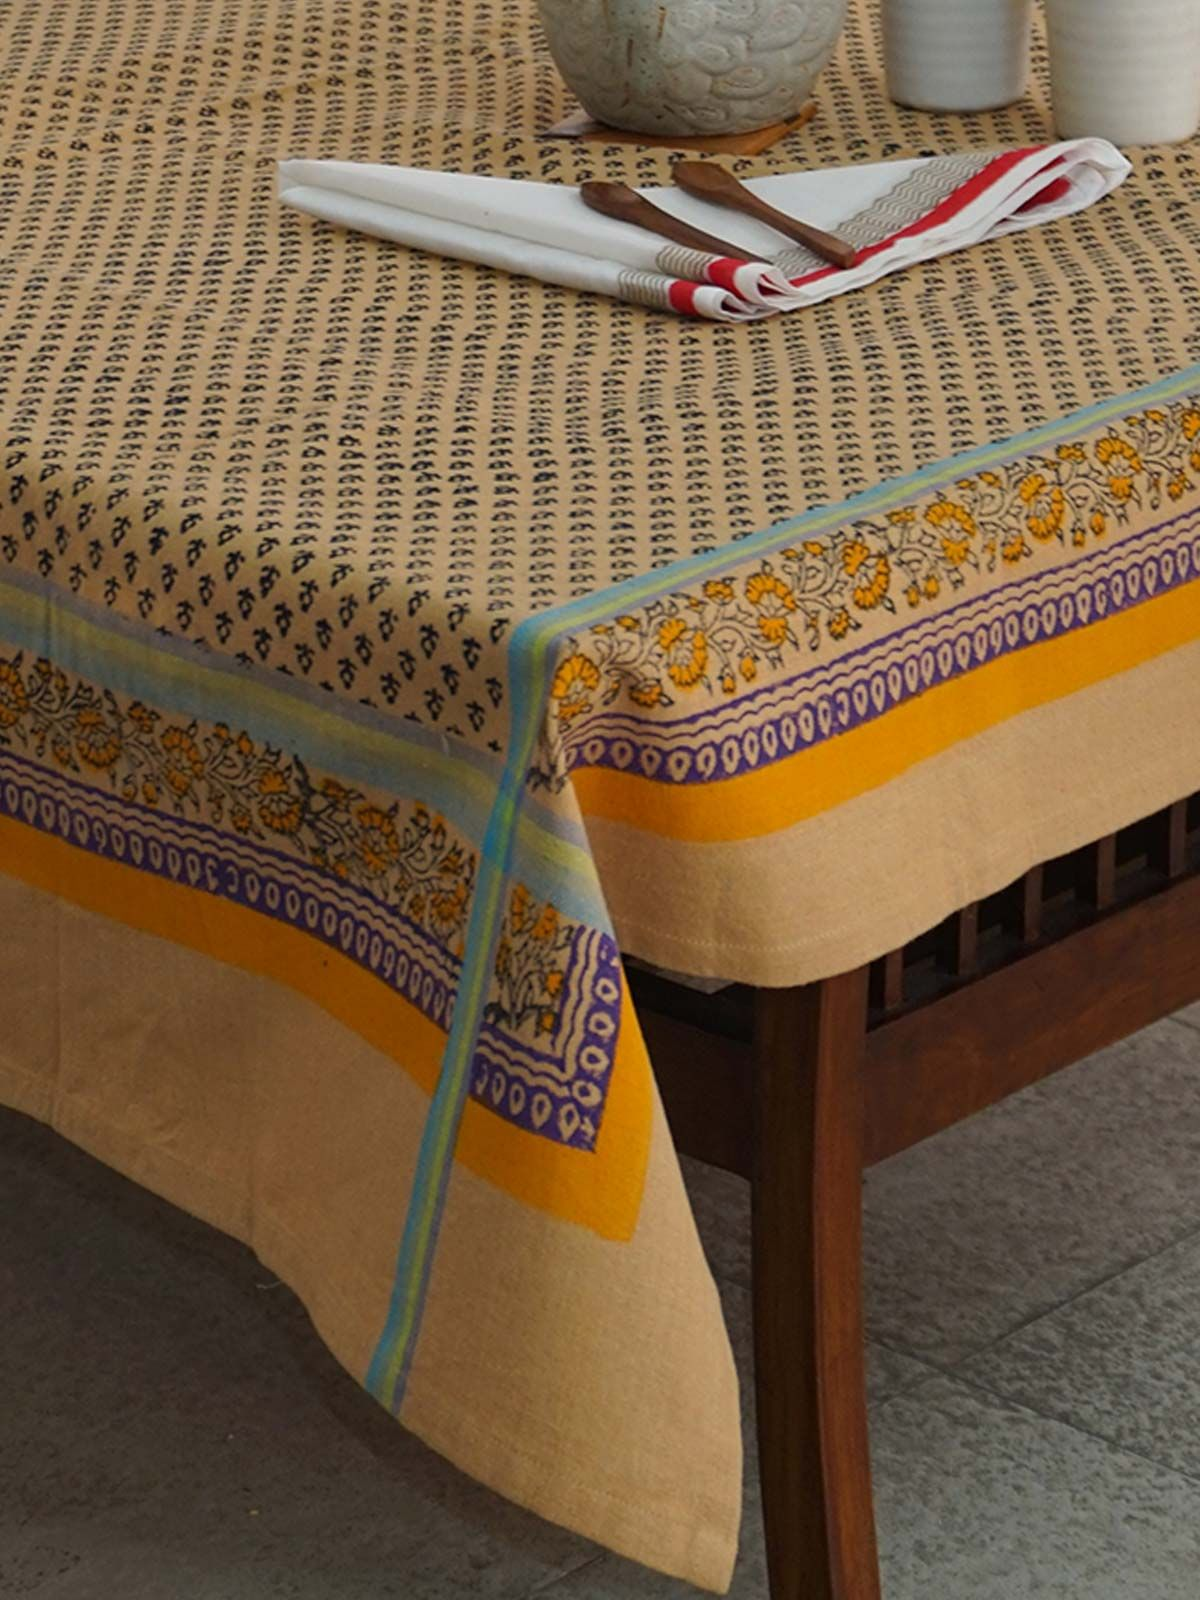 585c173a6 Buy Latest   Handmade Table Cover Online at Indian August